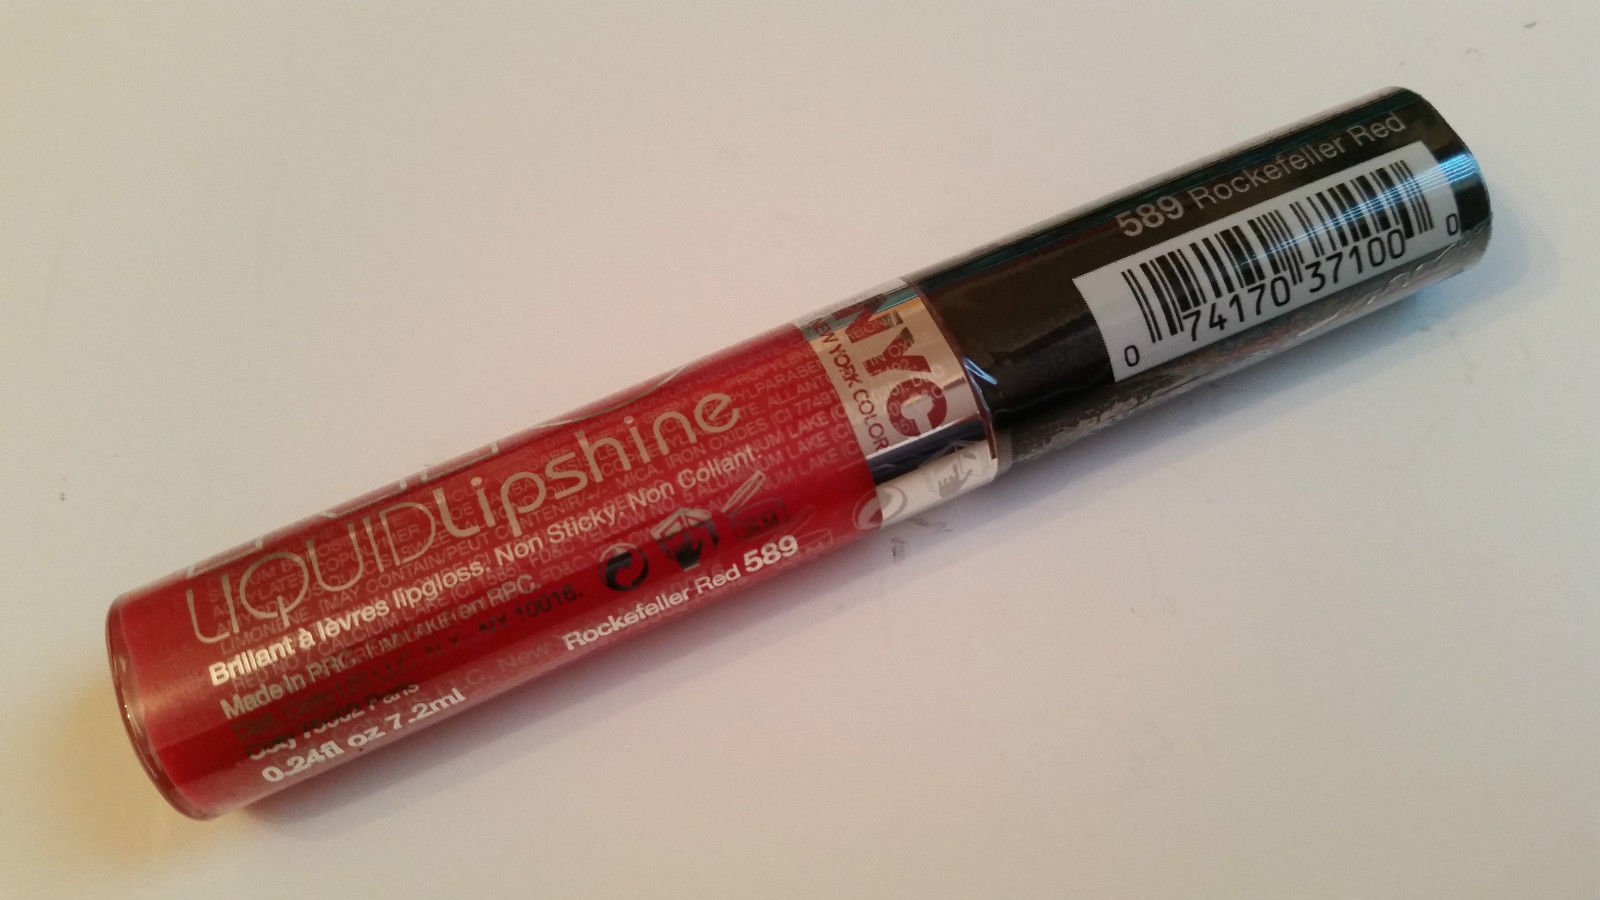 NYC LIQUID LIPSHINE LIP GLOSS 7.2ML - 589 ROCKEFELLER RED